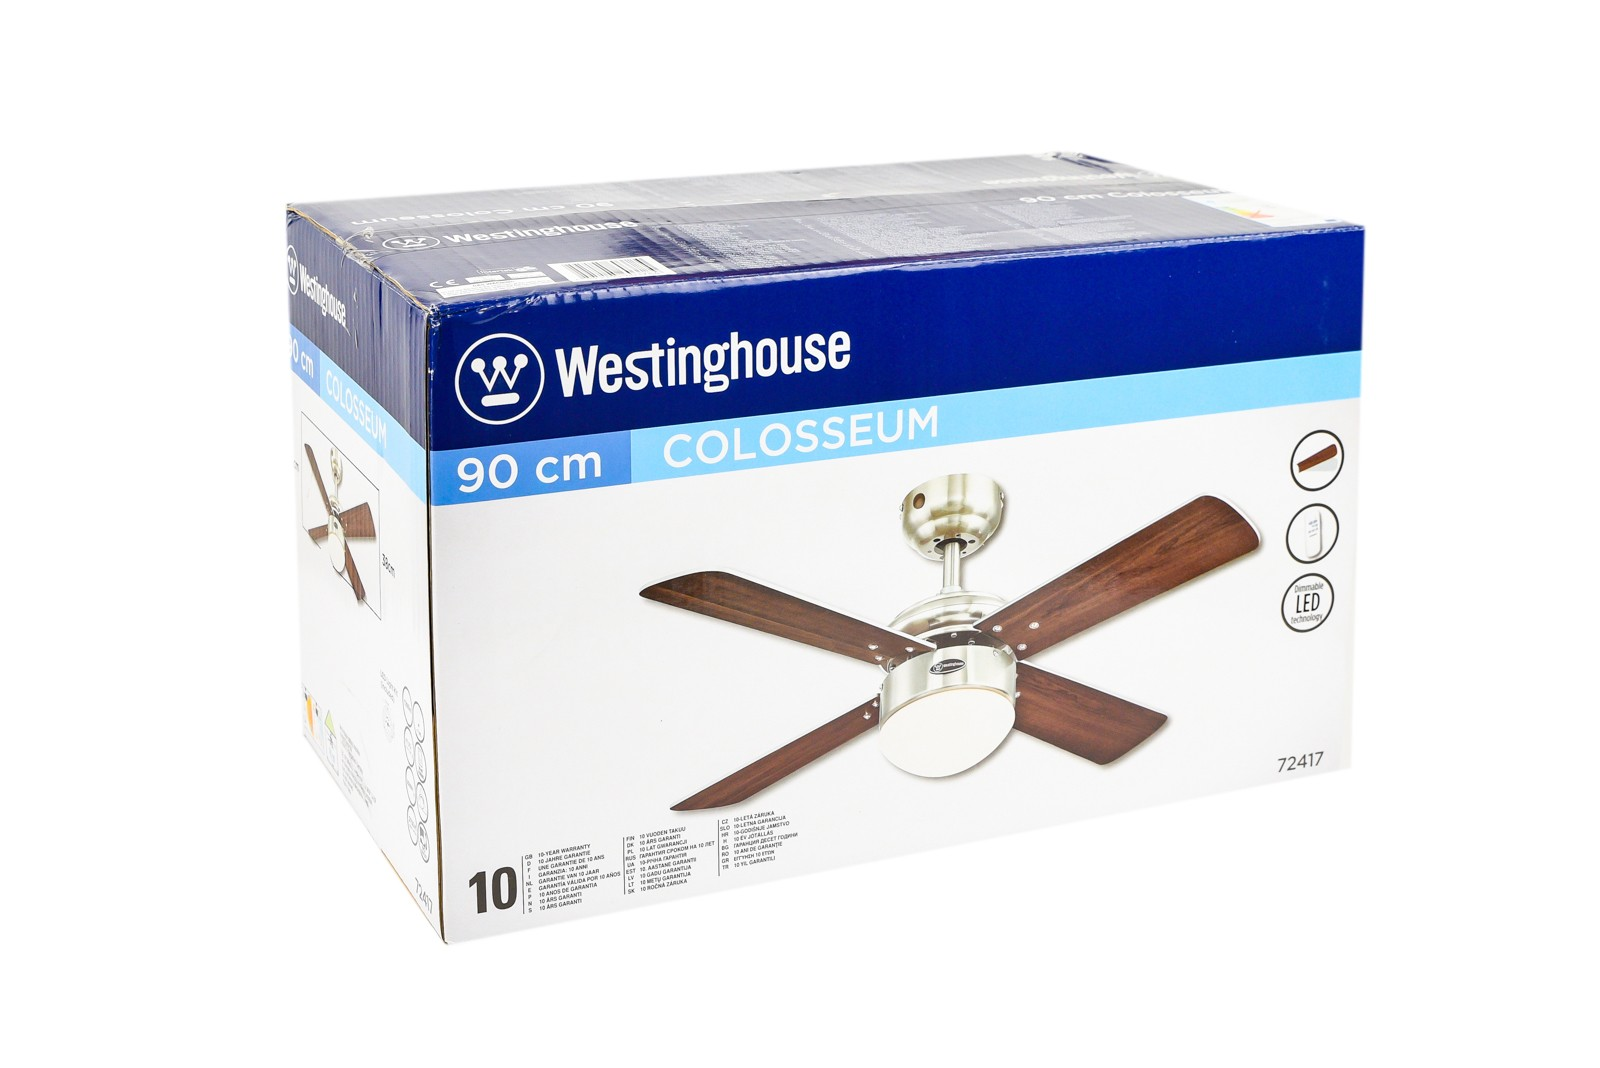 Westinghouse ceiling fan colosseum brushed nickel including dimmable westinghouse ceiling fan colosseum brushed nickel including dimmable led light and remote control bild 10 aloadofball Image collections